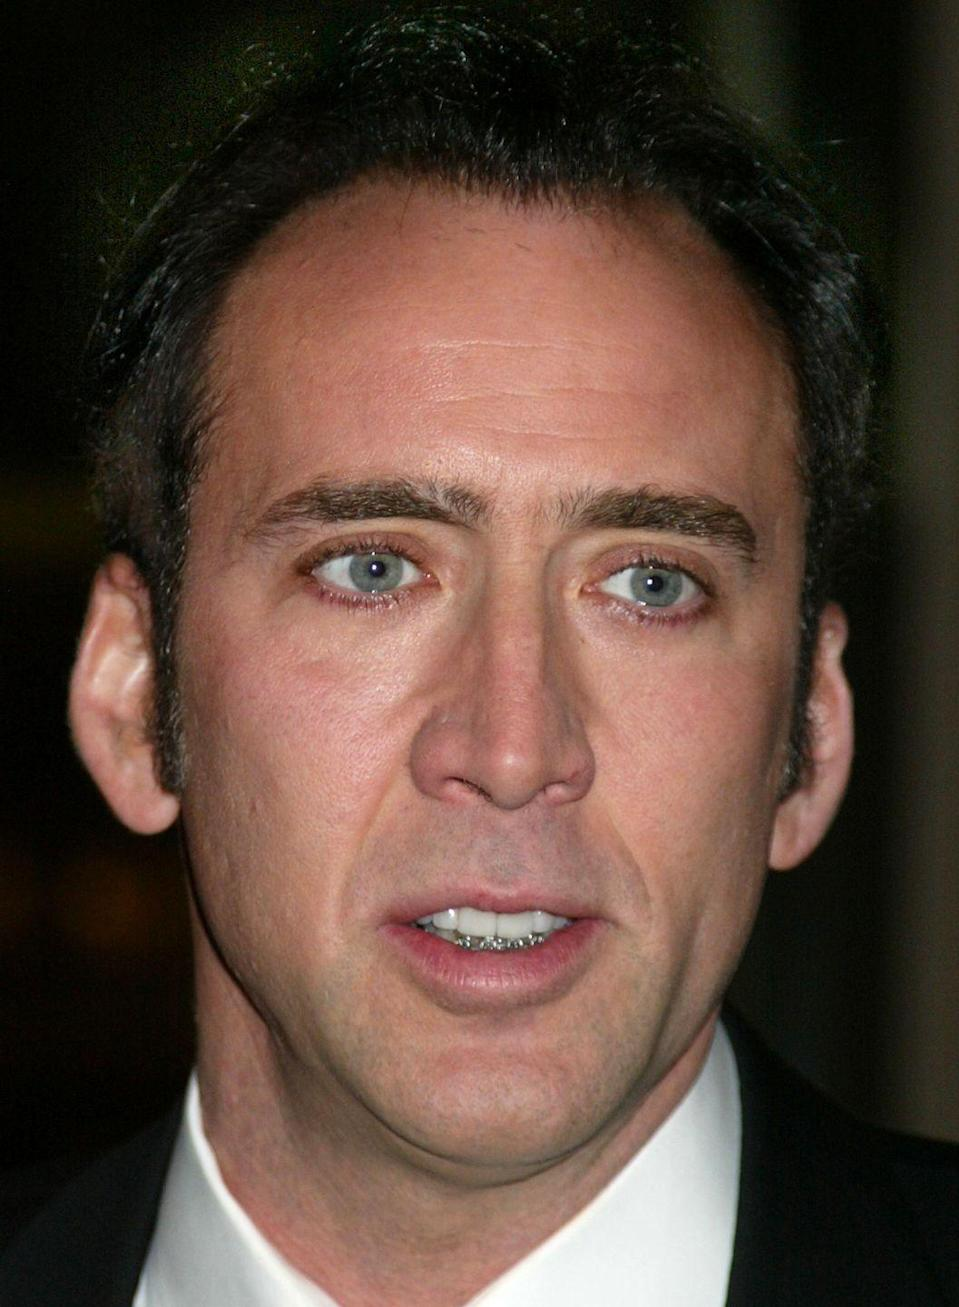 """<p>You may not realize Nicolas Cage got braces put on <a href=""""https://kingssmiles.com/celebritys-orthodontic-journey-7-nicolas-cage/"""" rel=""""nofollow noopener"""" target=""""_blank"""" data-ylk=""""slk:when he was in his 40s"""" class=""""link rapid-noclick-resp"""">when he was in his 40s</a> because they were only on his bottom teeth.</p>"""